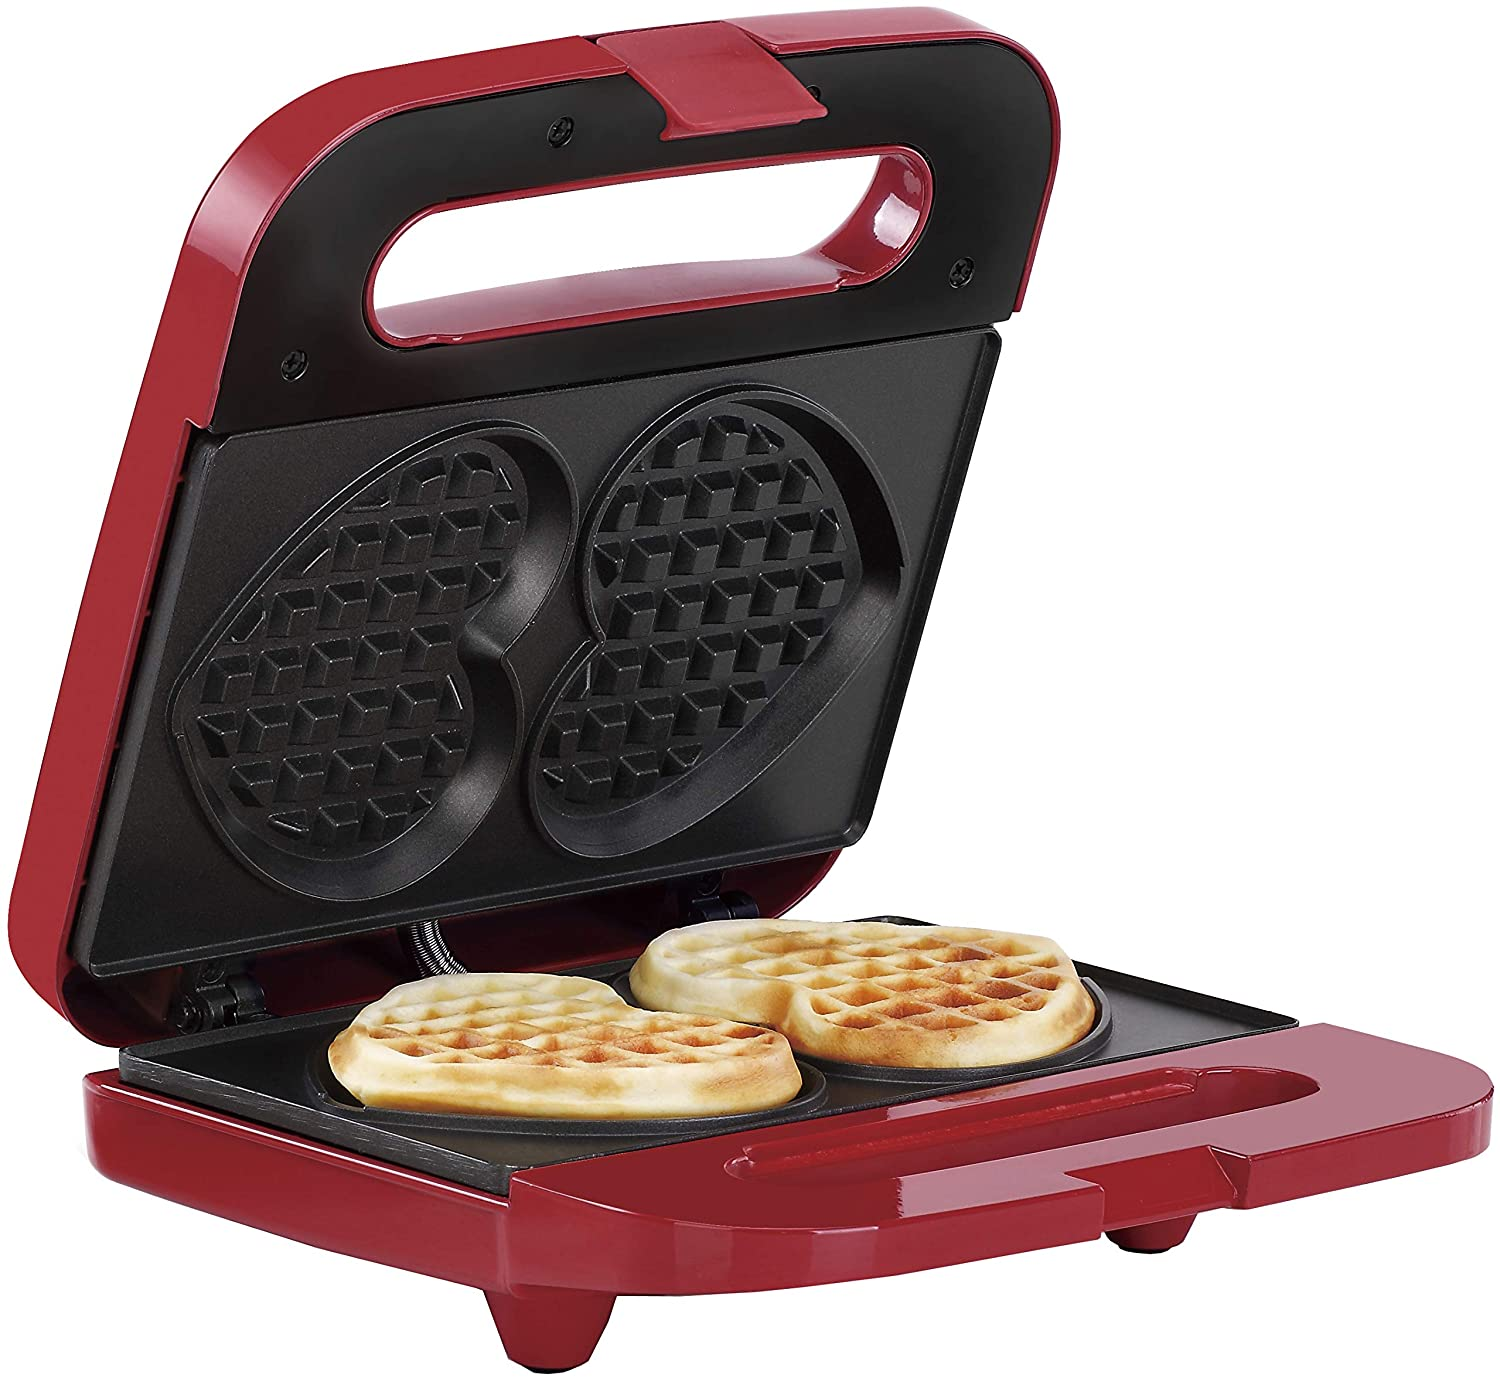 Holstein Housewares HF-09041R Non-Stick Heart Waffle Maker, Red/Stainless Steel